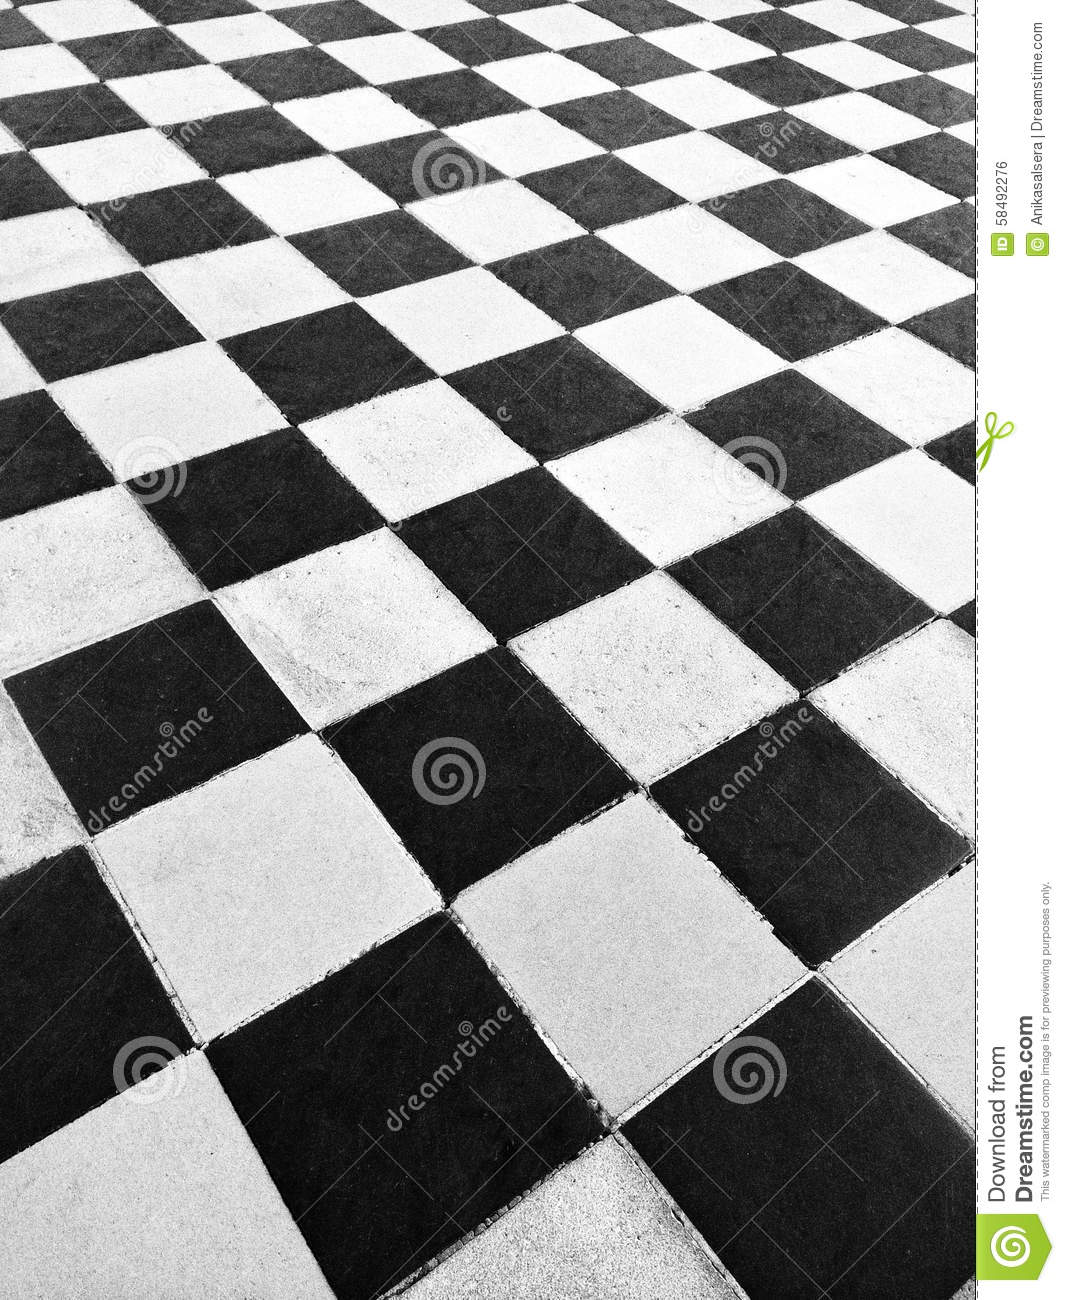 Black and white tile floor stock photo image 58492276 for Black and white tile floors